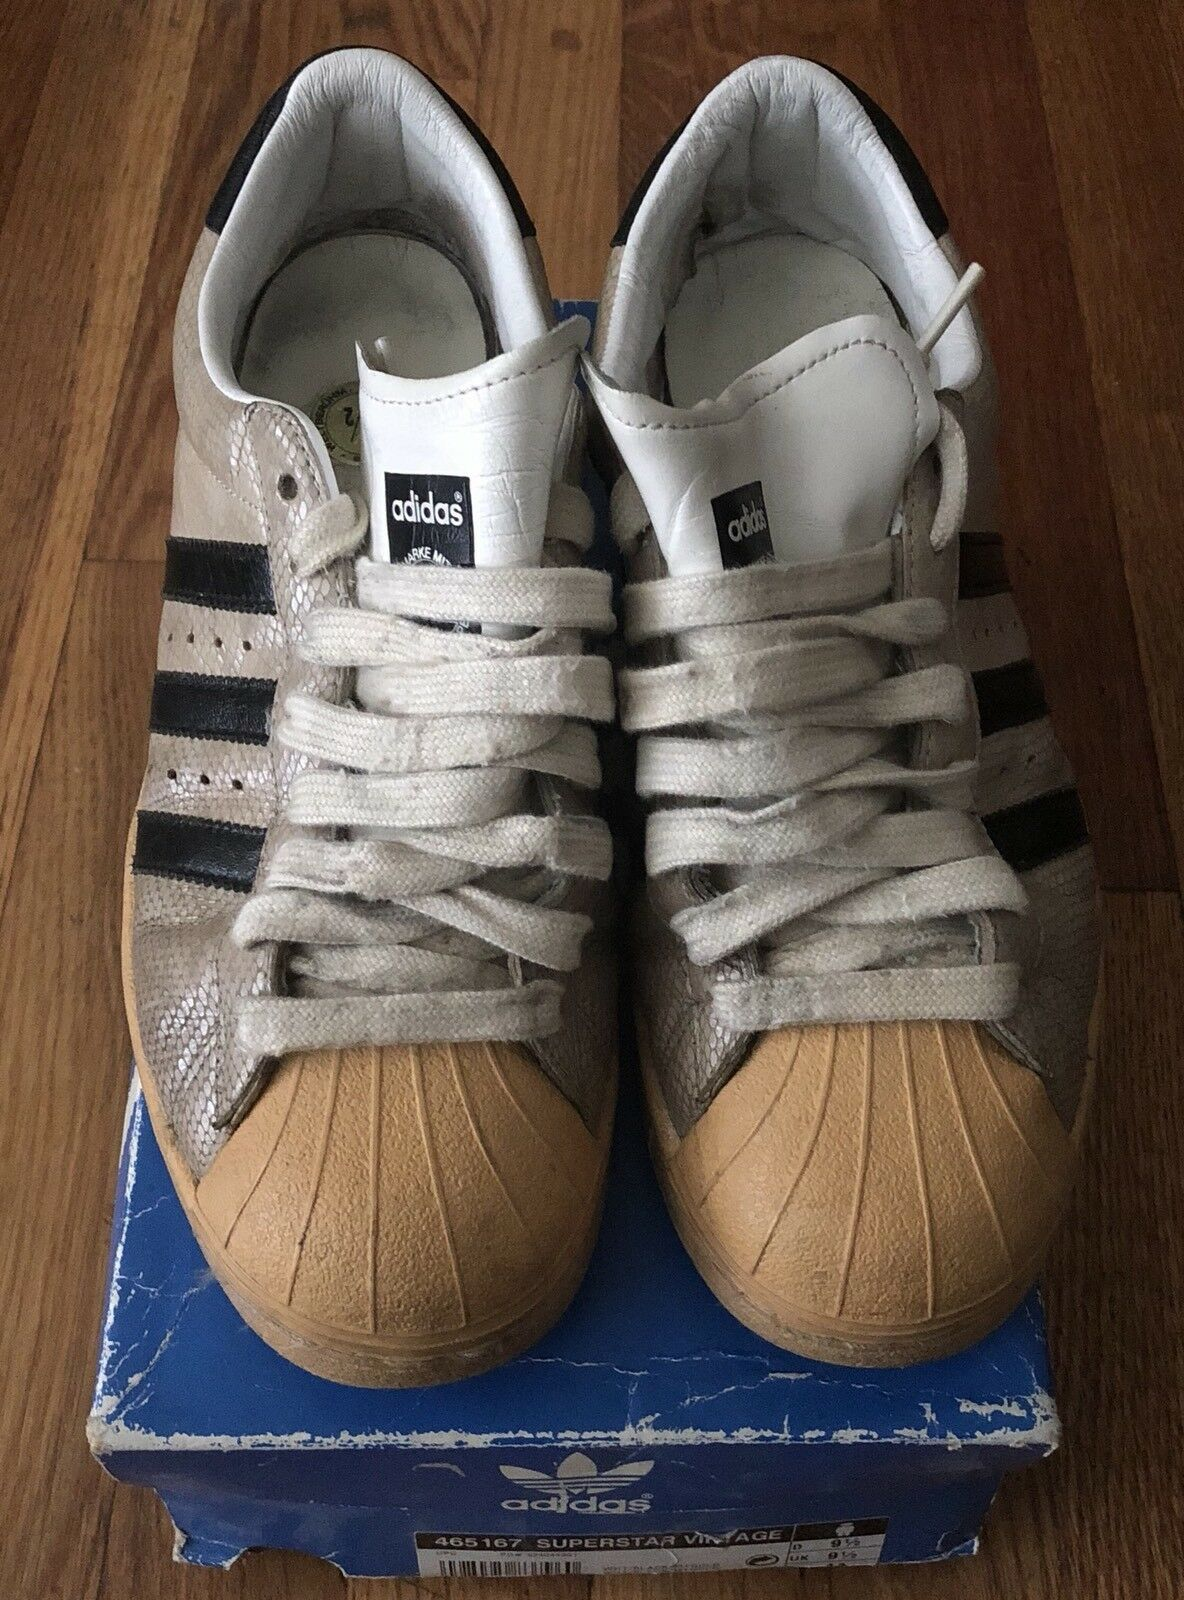 Adidas SuperStar Mens Vintage Snakeskin US Sz 10 UK Sz 9.5